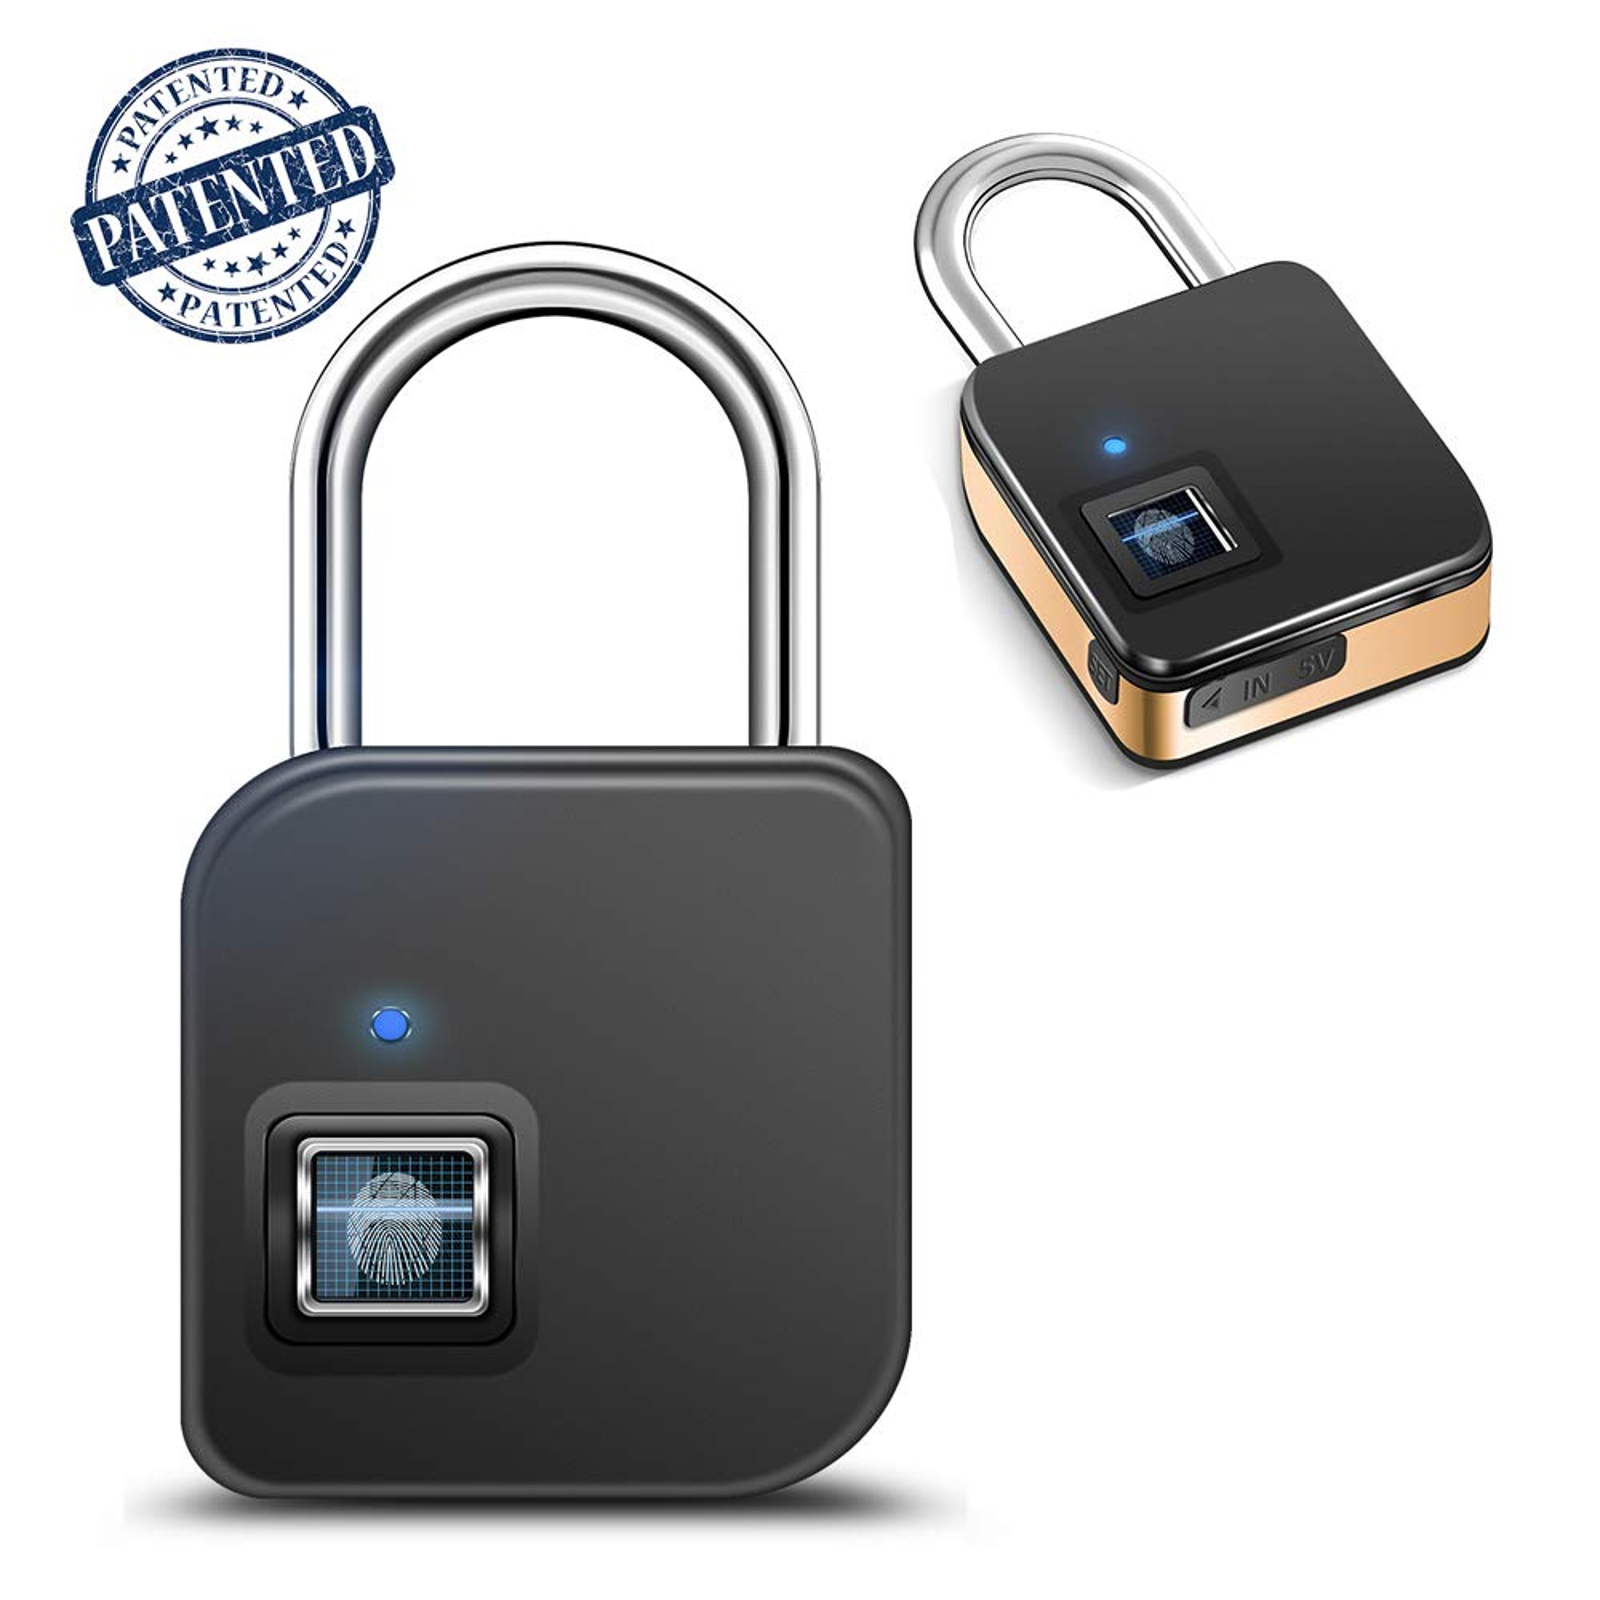 Save 35% on SZHSR 2018 Fingerprint Lock with Coupon Code: N5ERTGMO